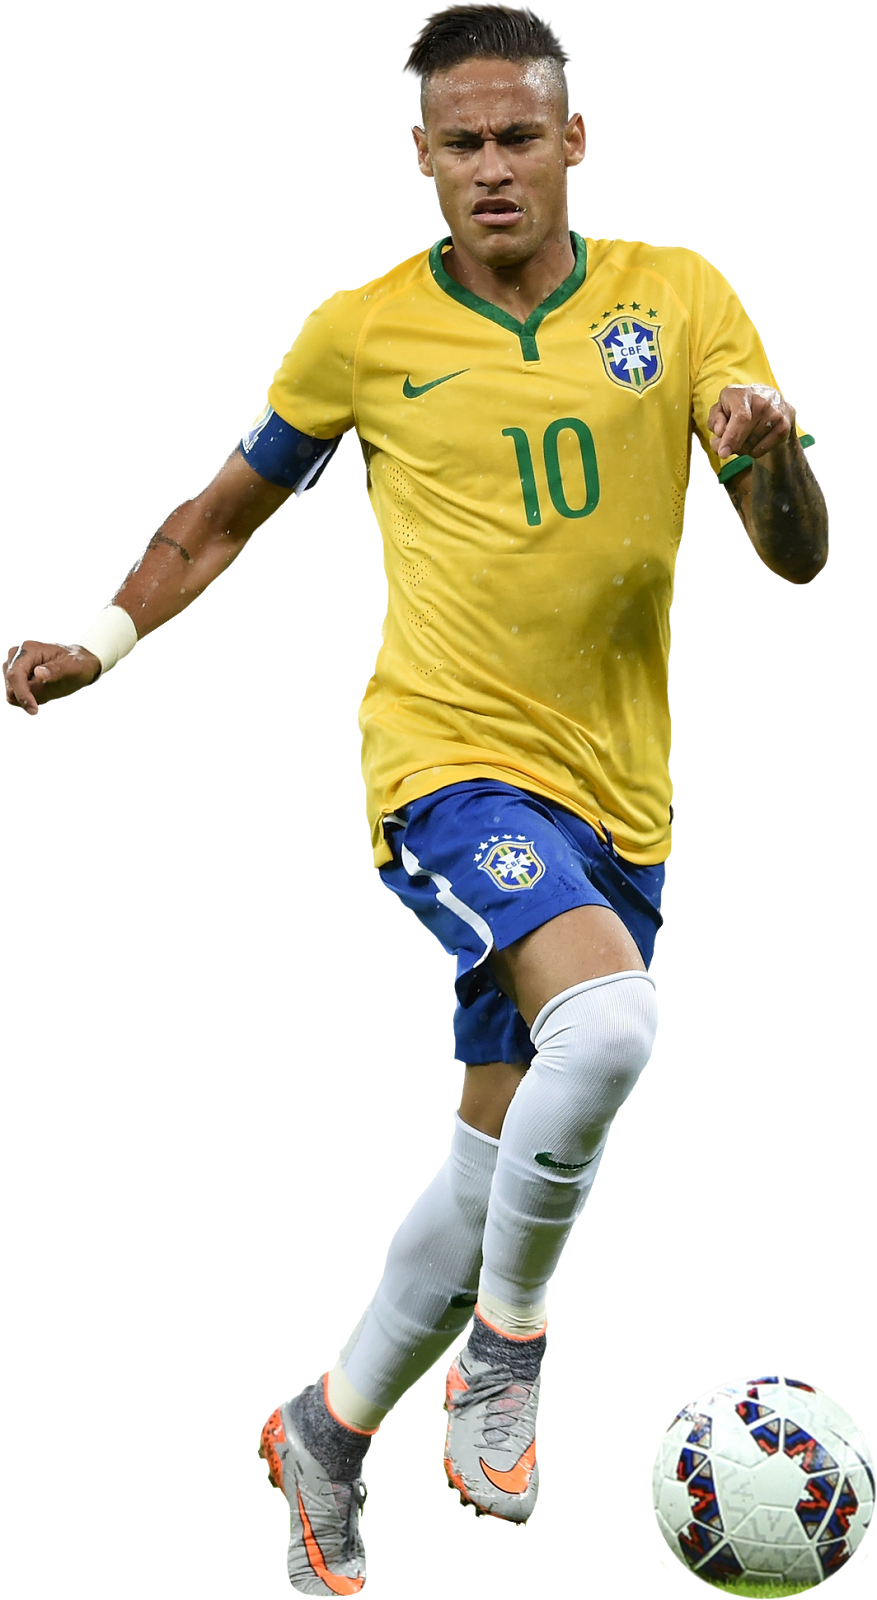 Neymar Football Render Athlete Png image #44982